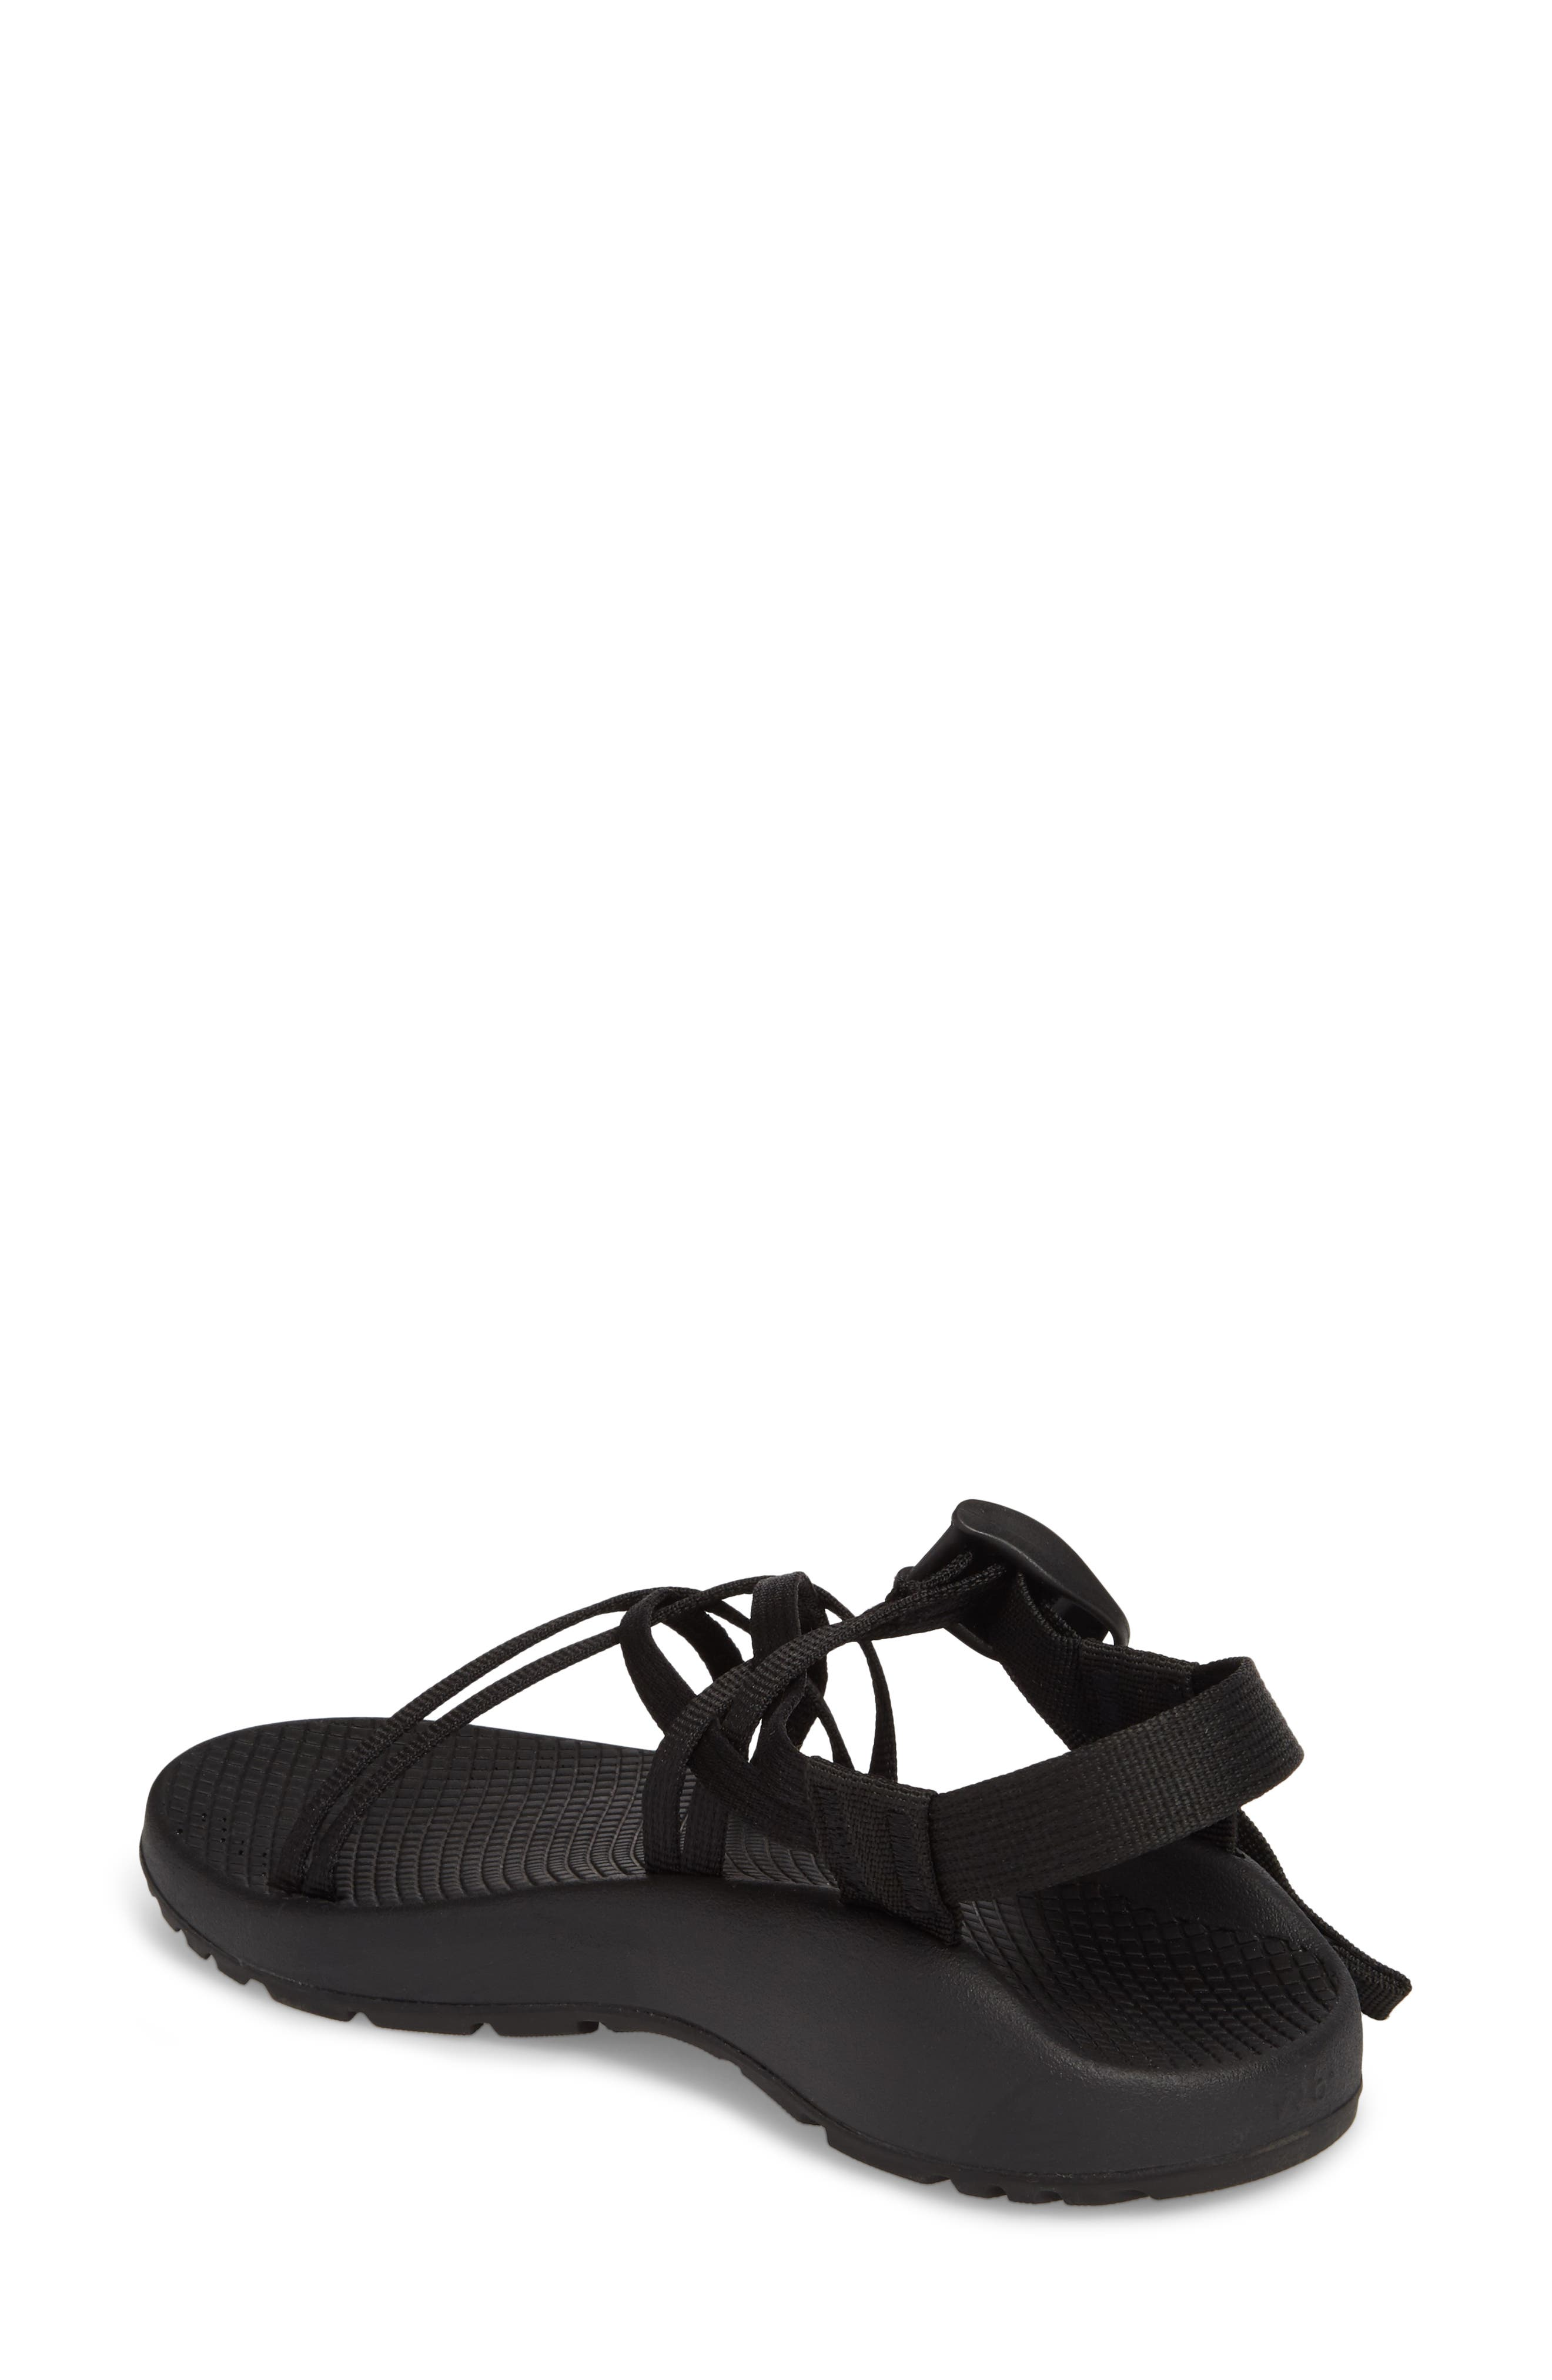 ZX1 Classic Sport Sandal,                             Alternate thumbnail 2, color,                             Black